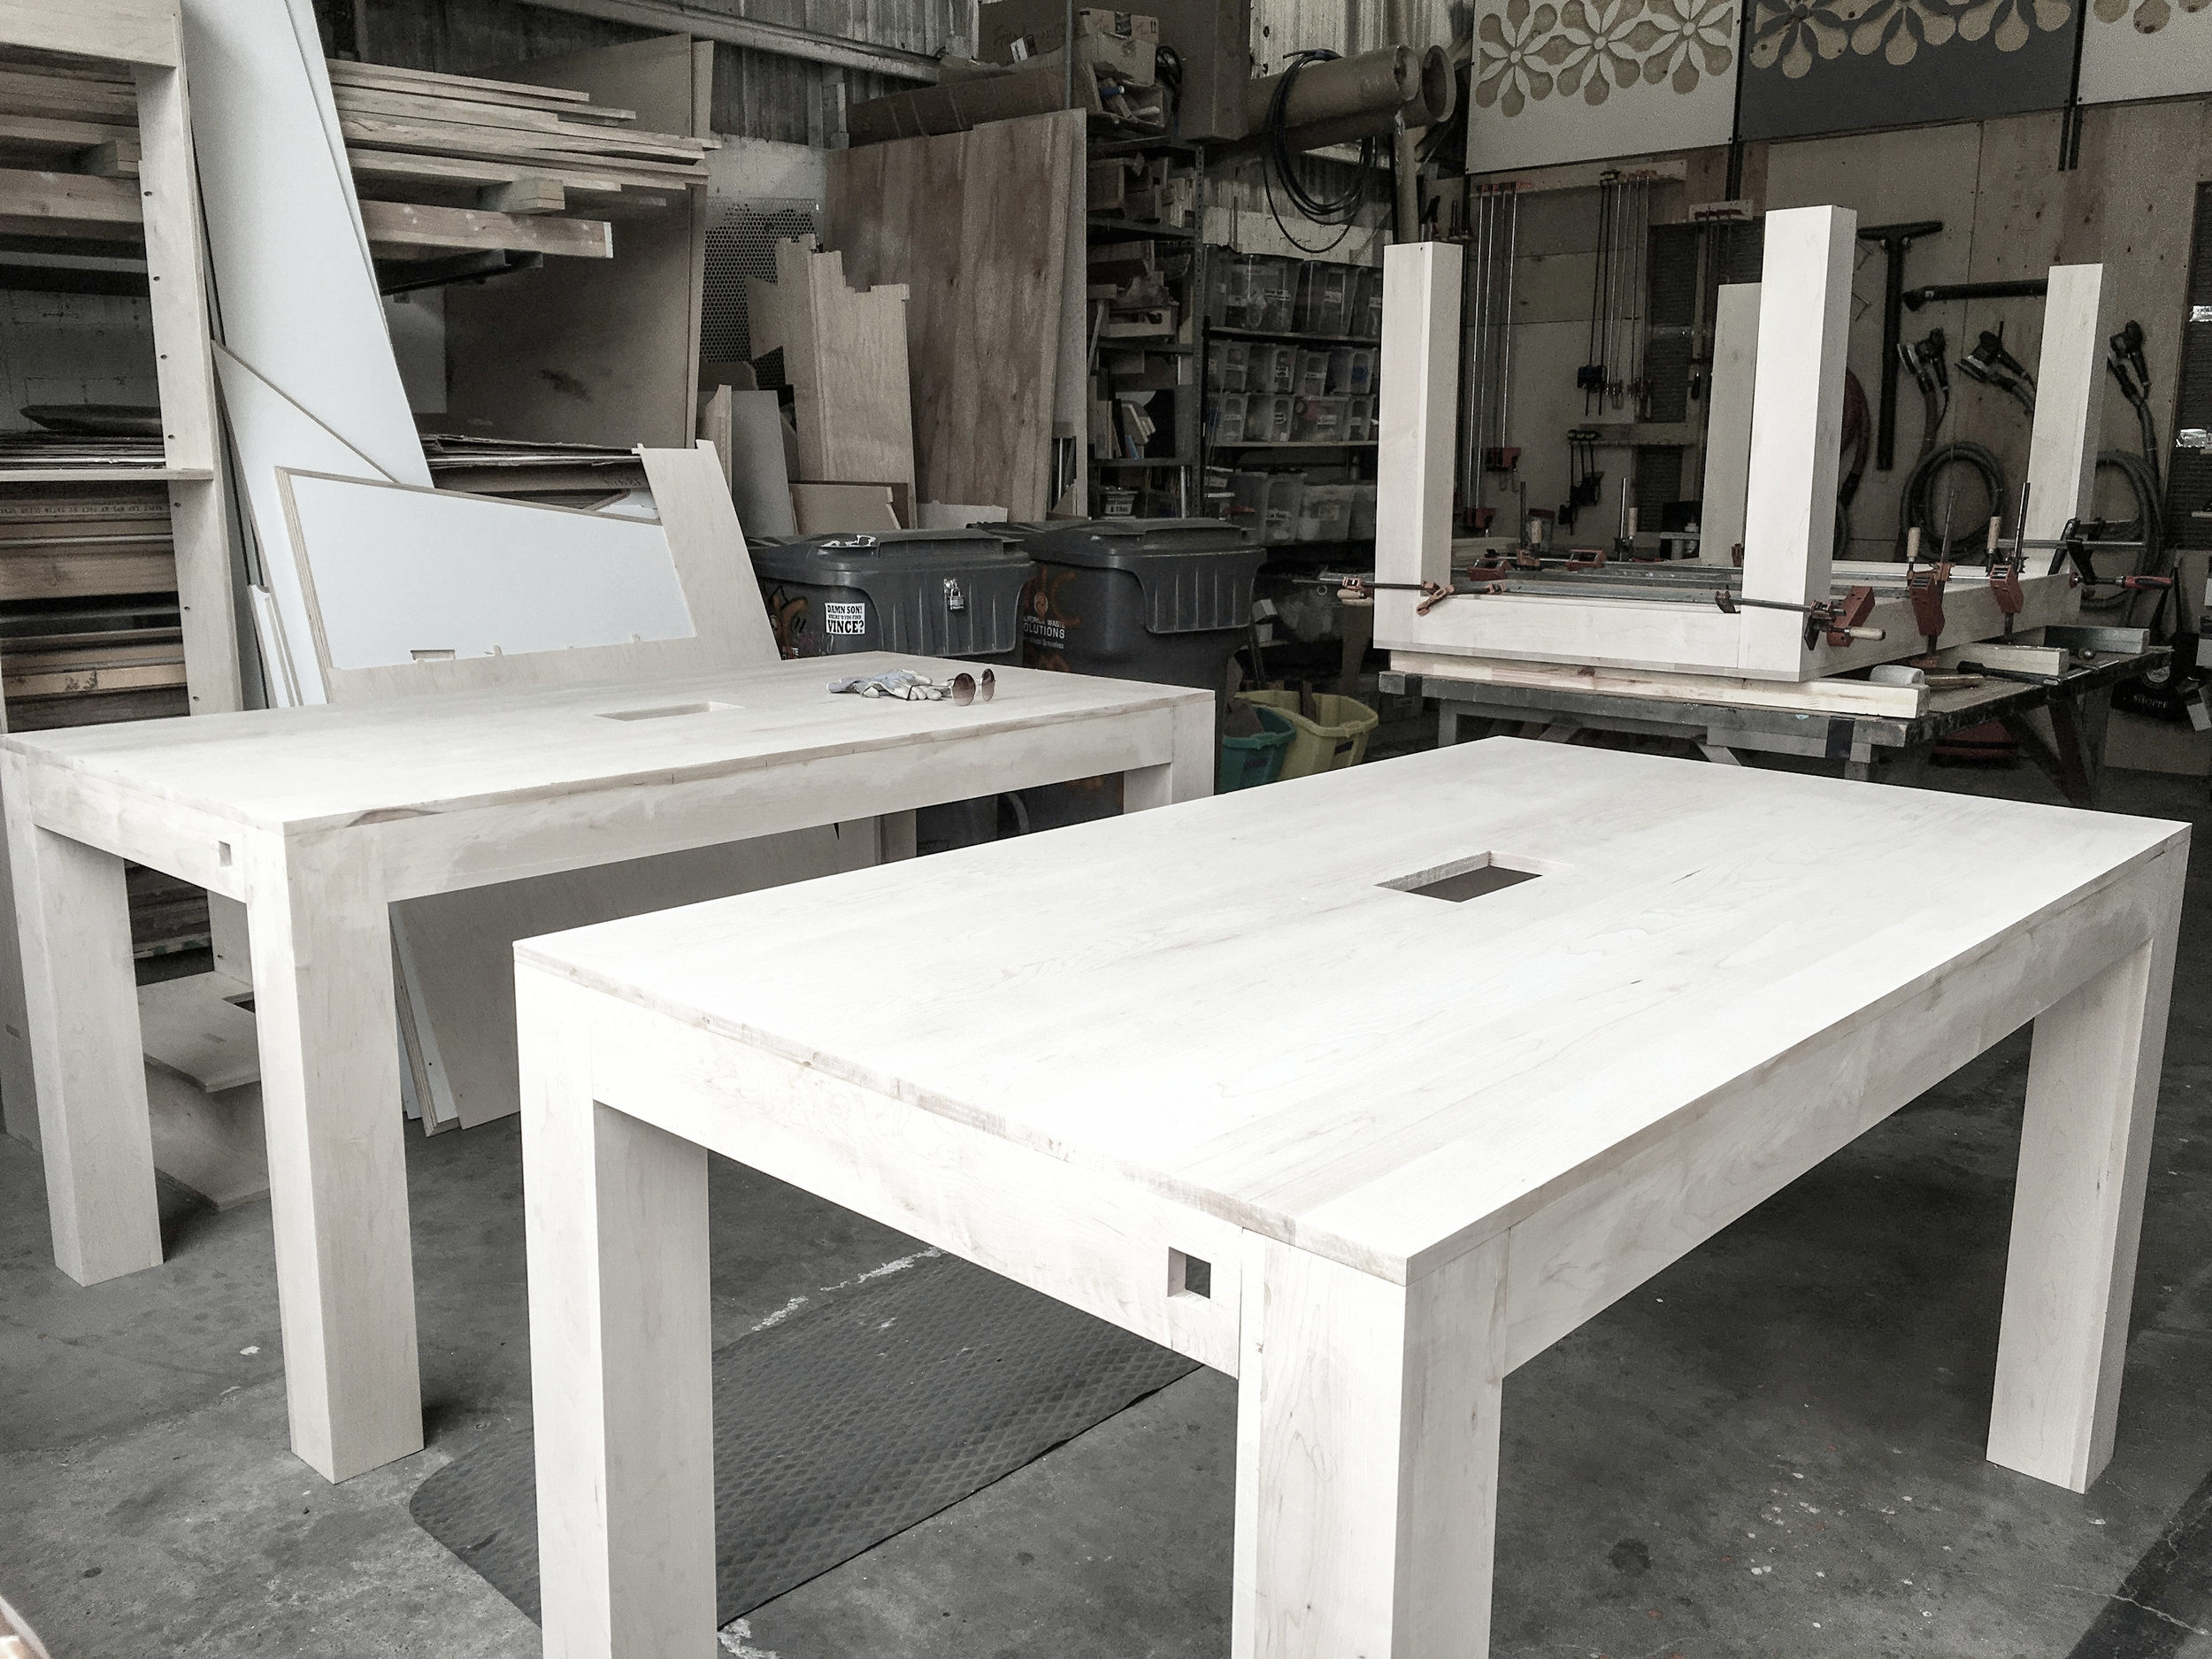 Almost ready to go! The tables get their final fabrication details and staging to get ready for finishing.